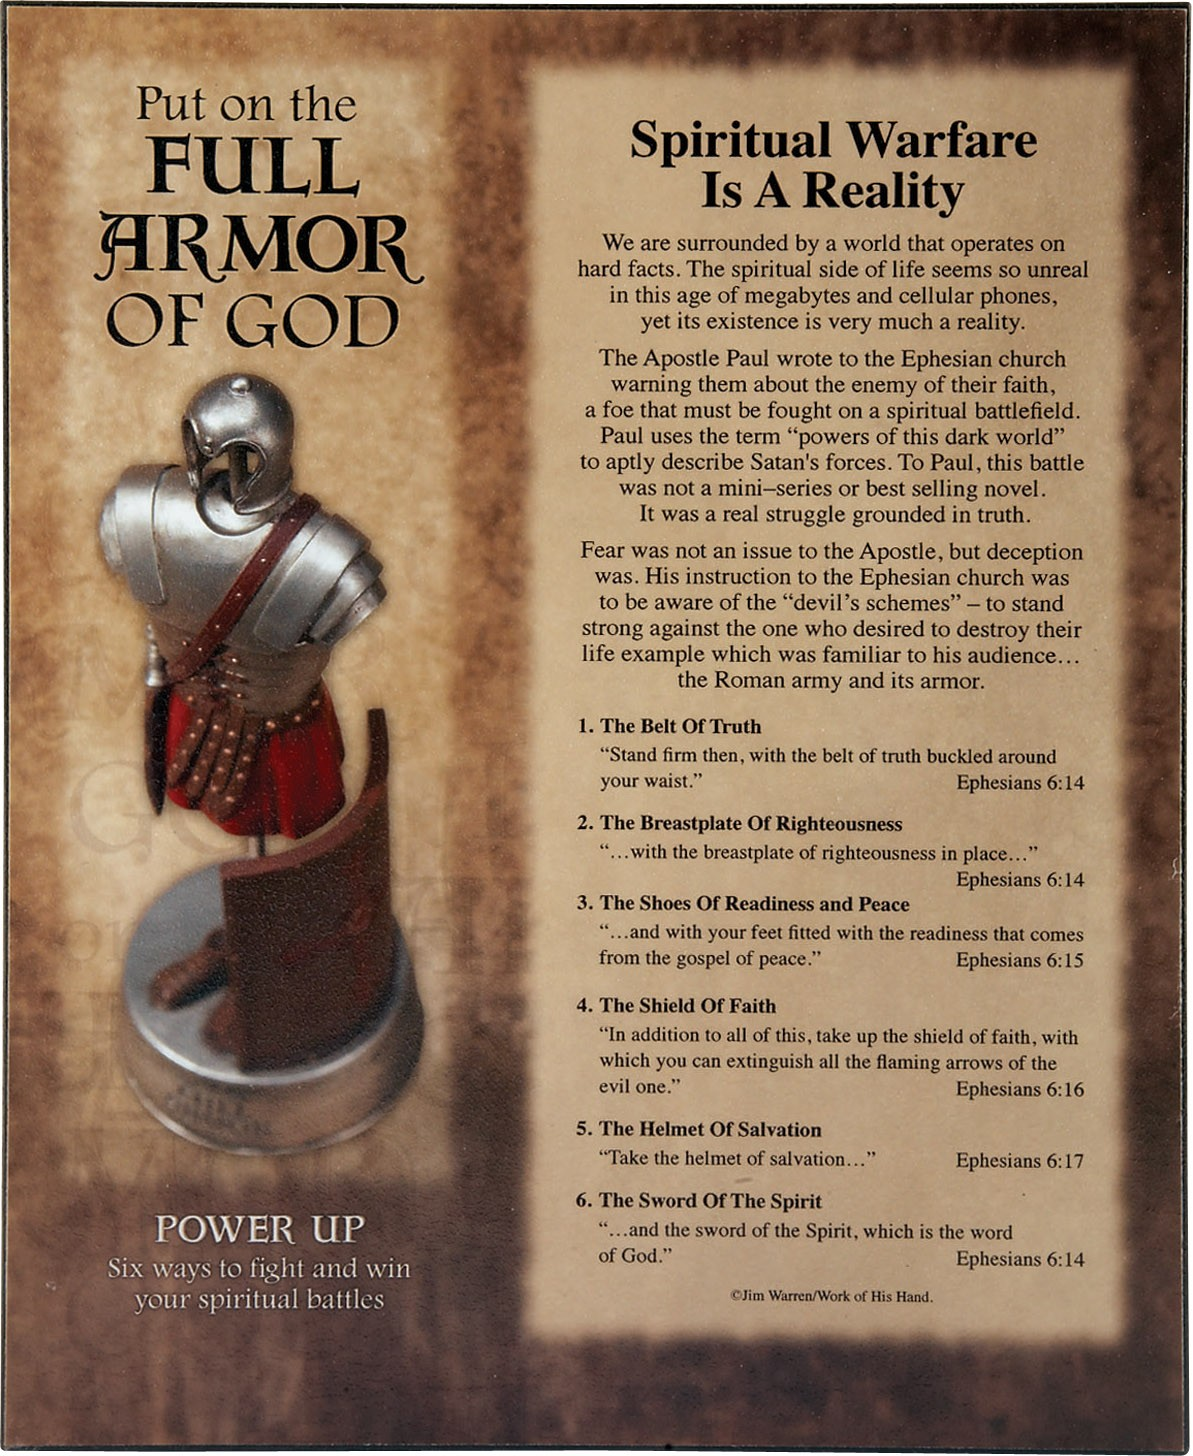 Armor Of God Quotes About. QuotesGram